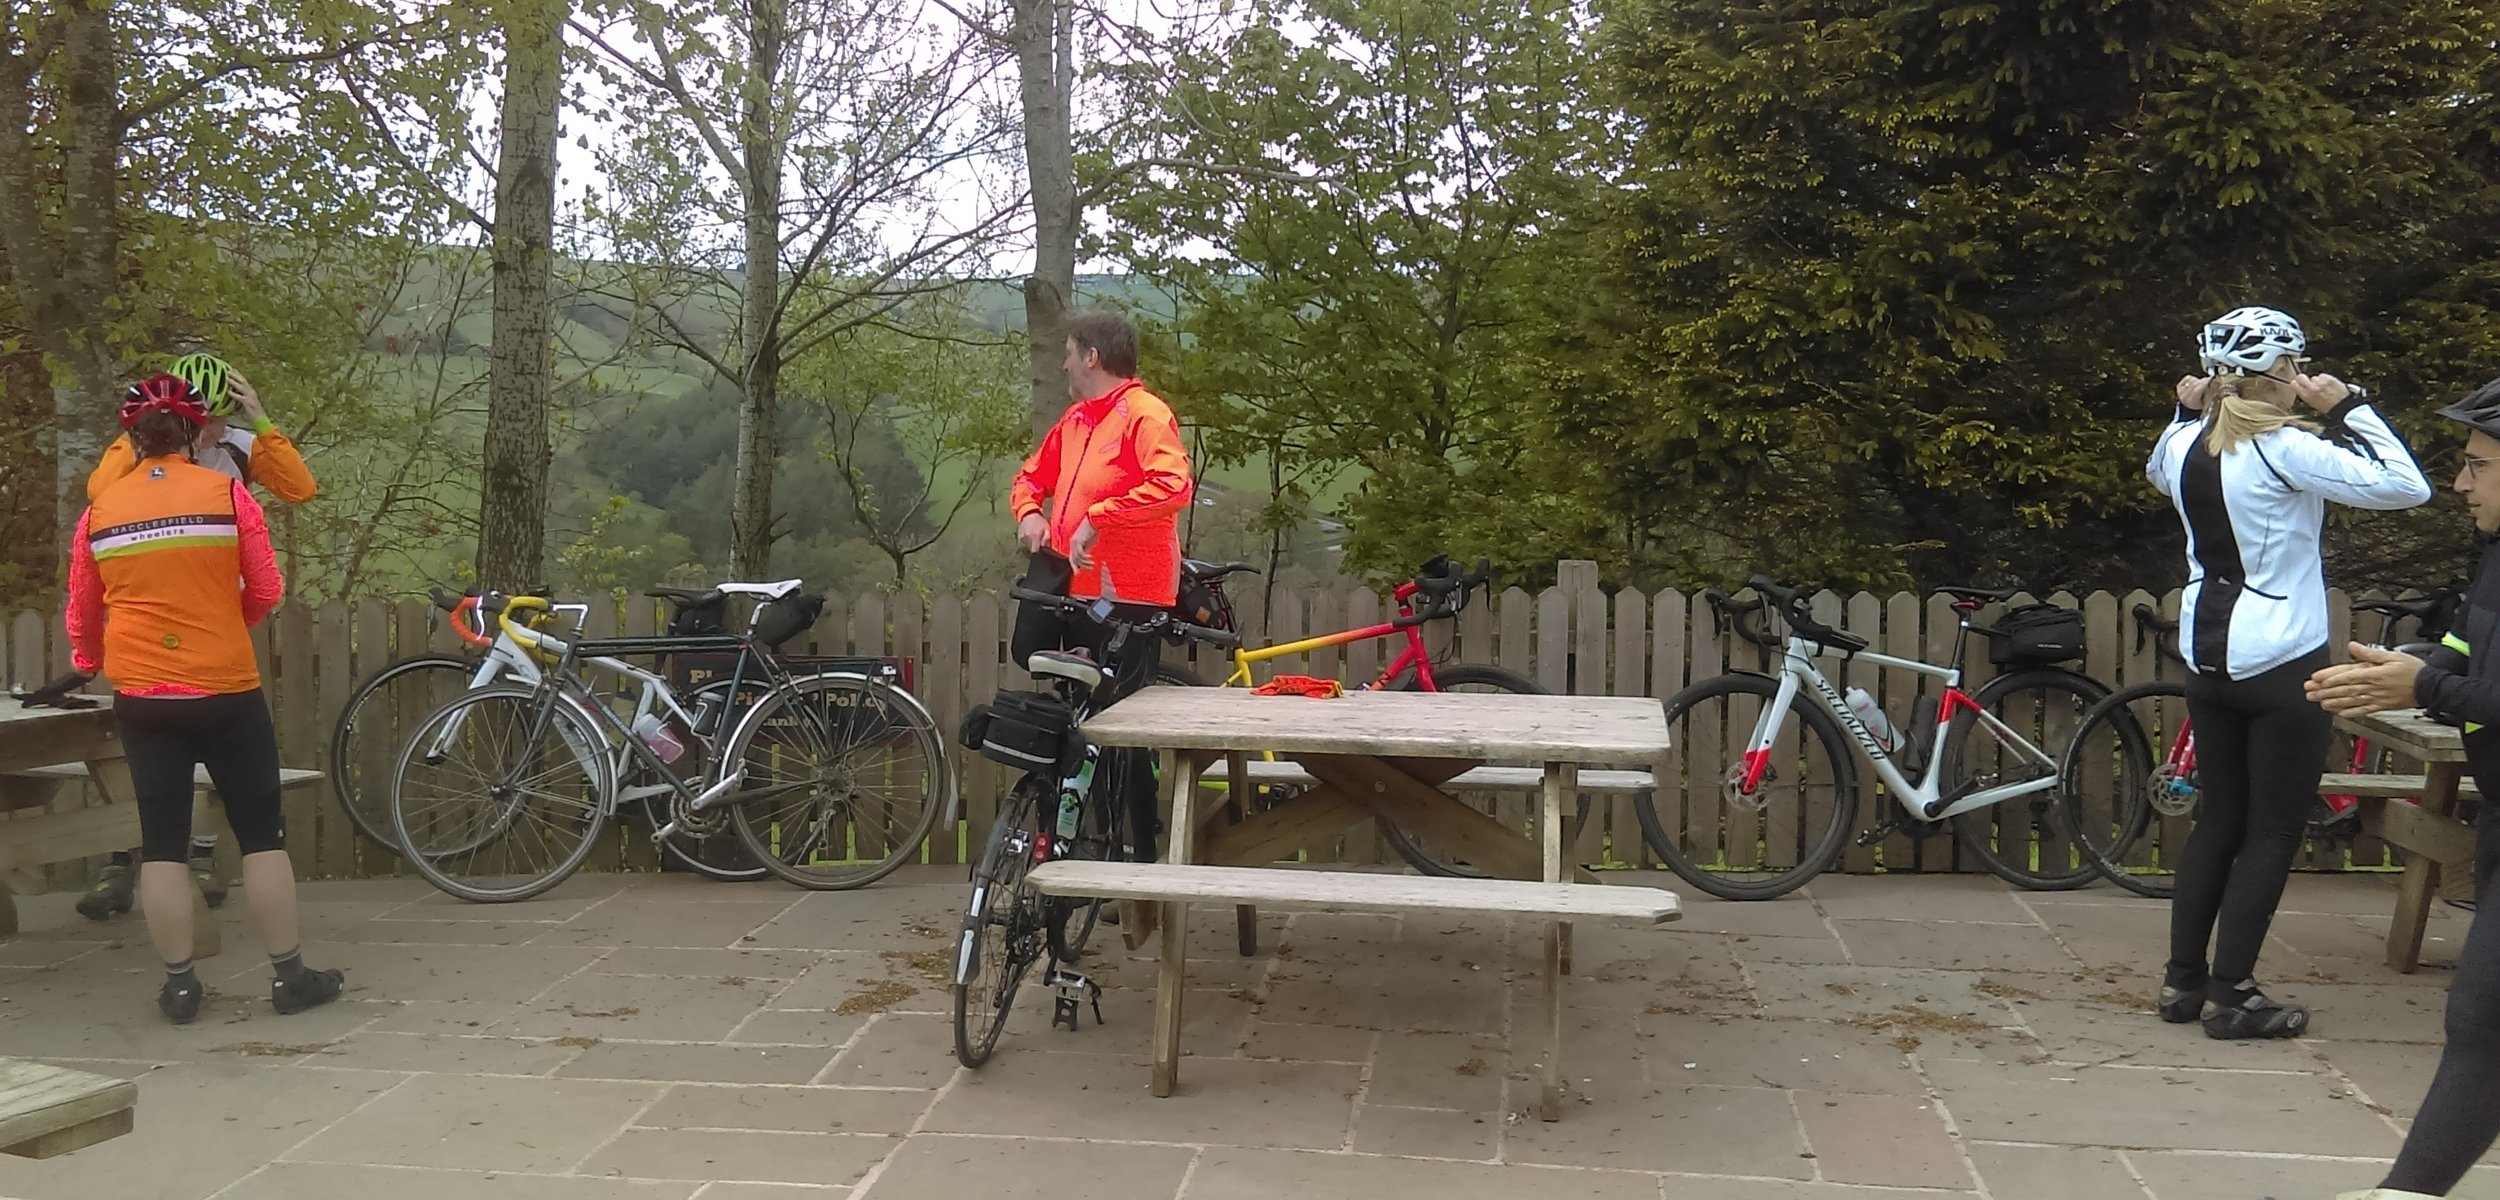 After refuelling at the cafe